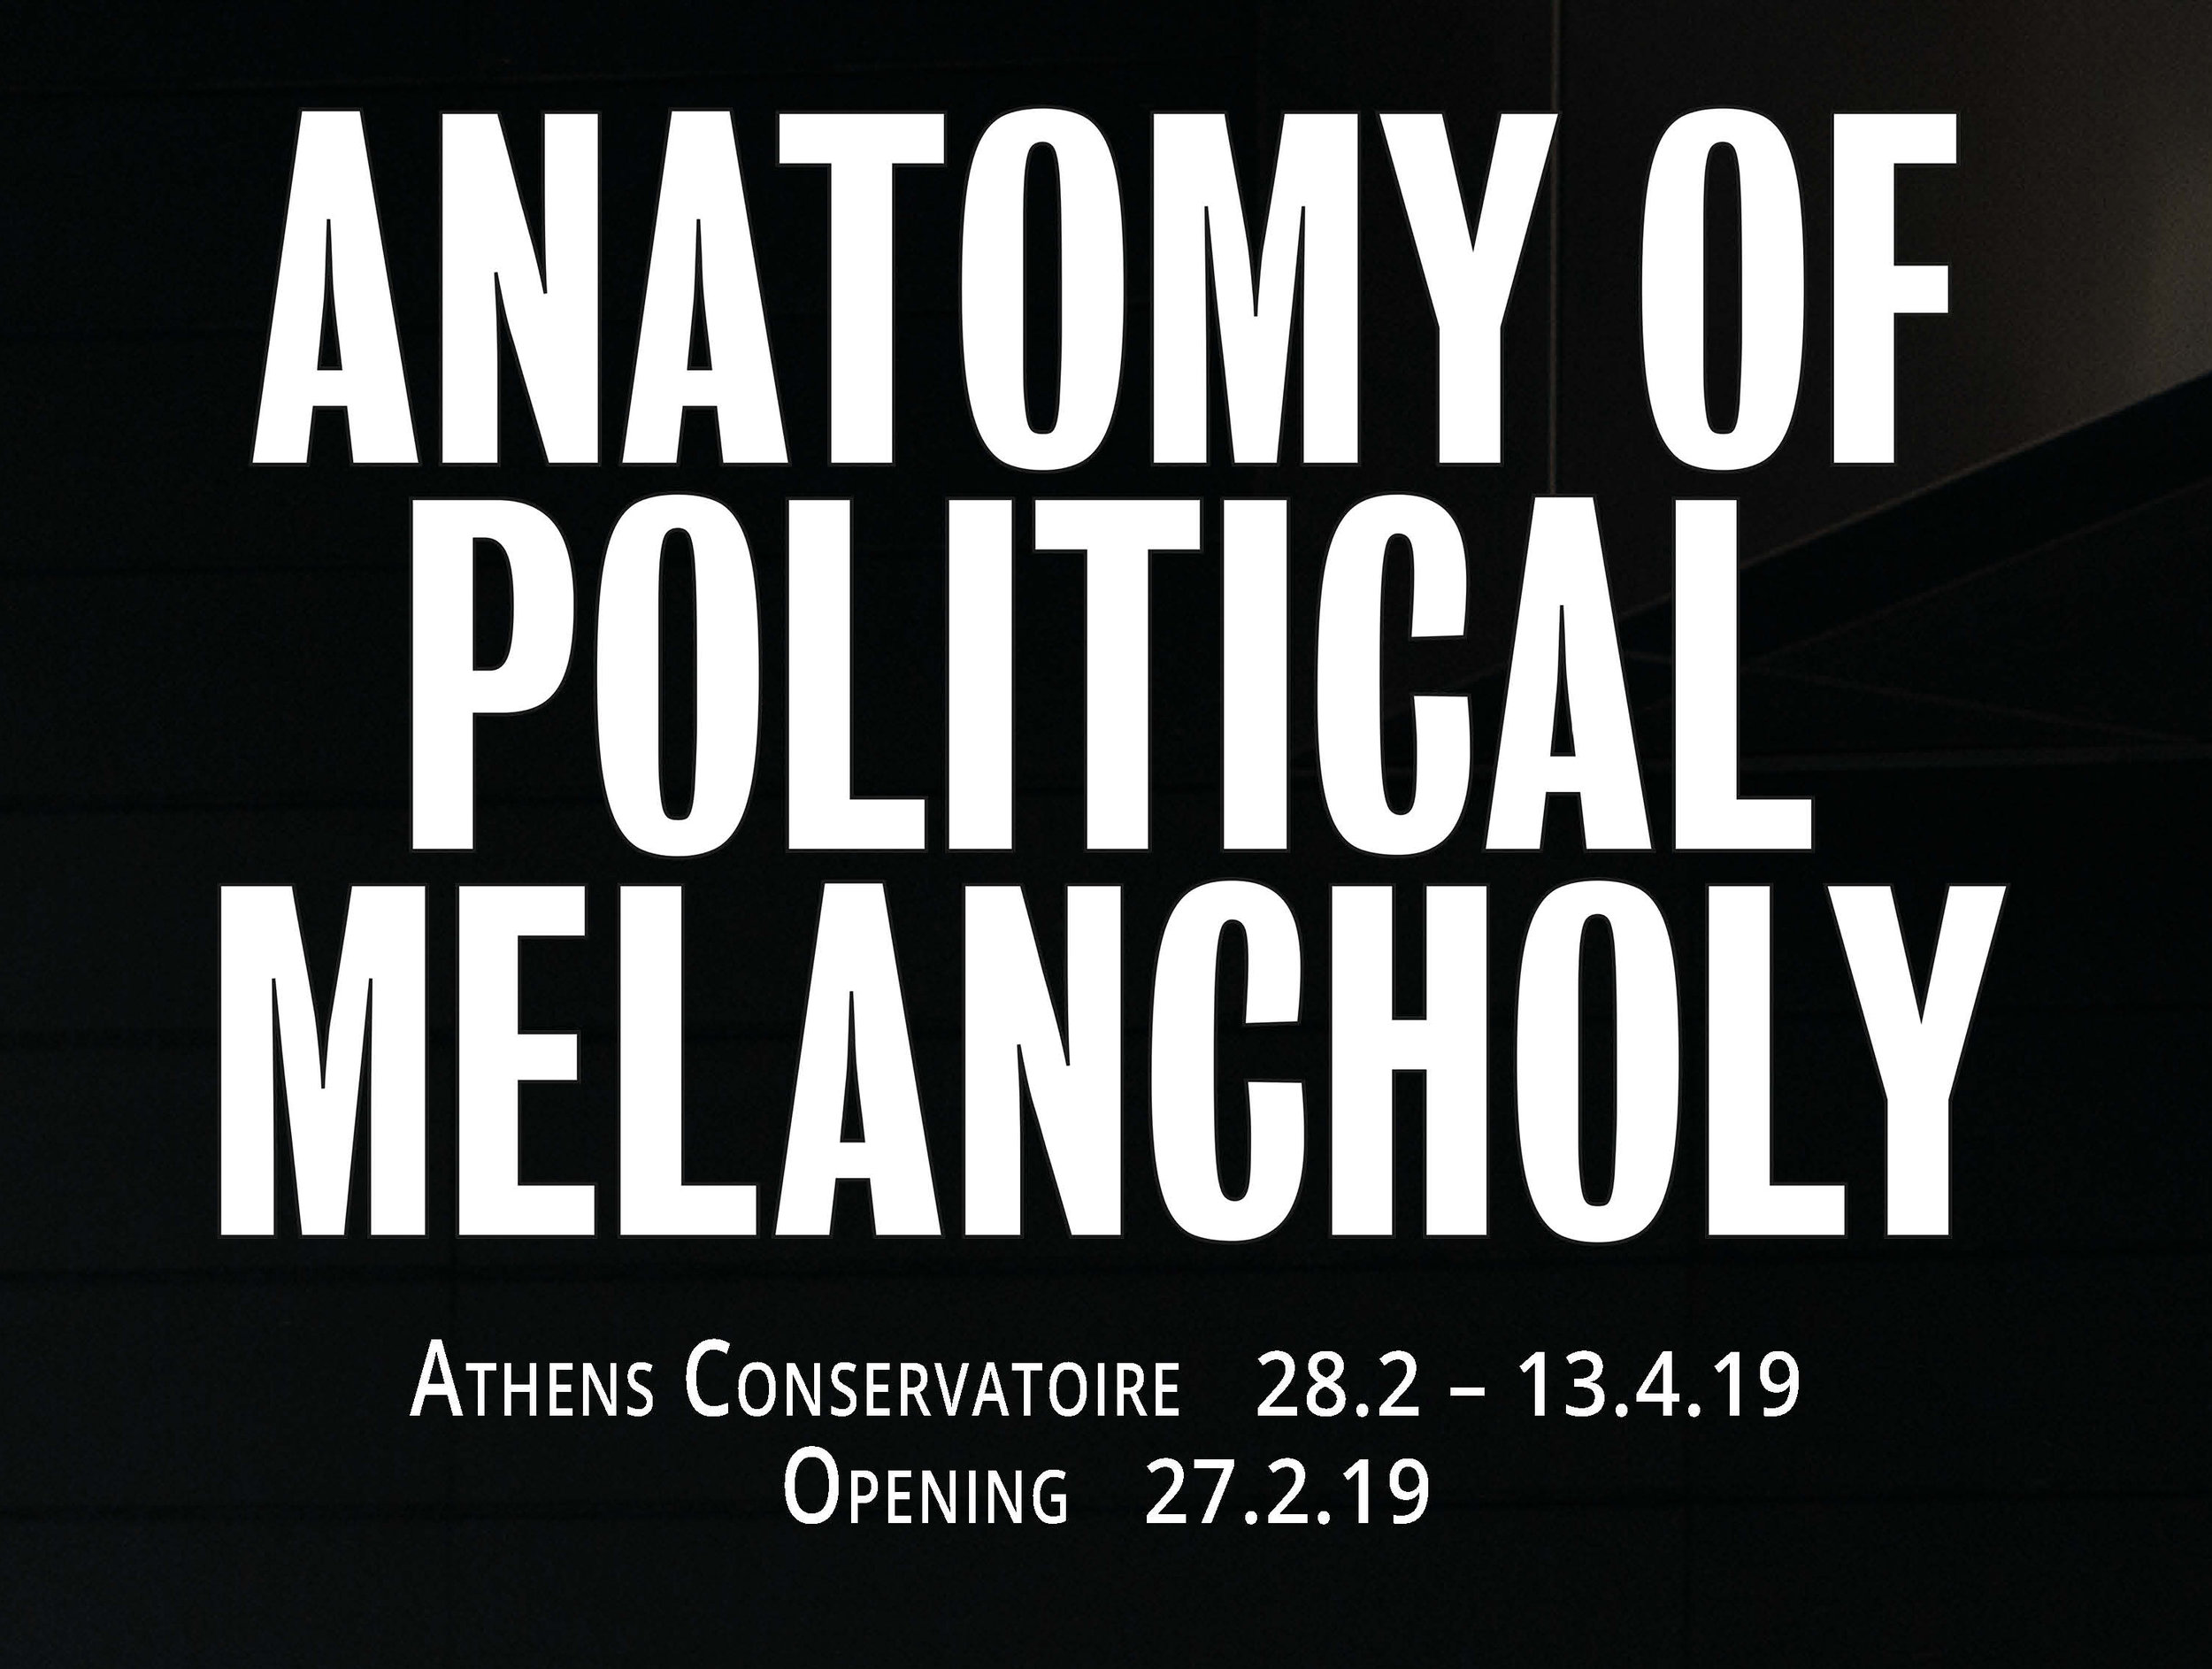 Anatomy  of Political Melancholy, Schwarz Foundation, ATHENS CONSERVATORY, depression era, athens, greece